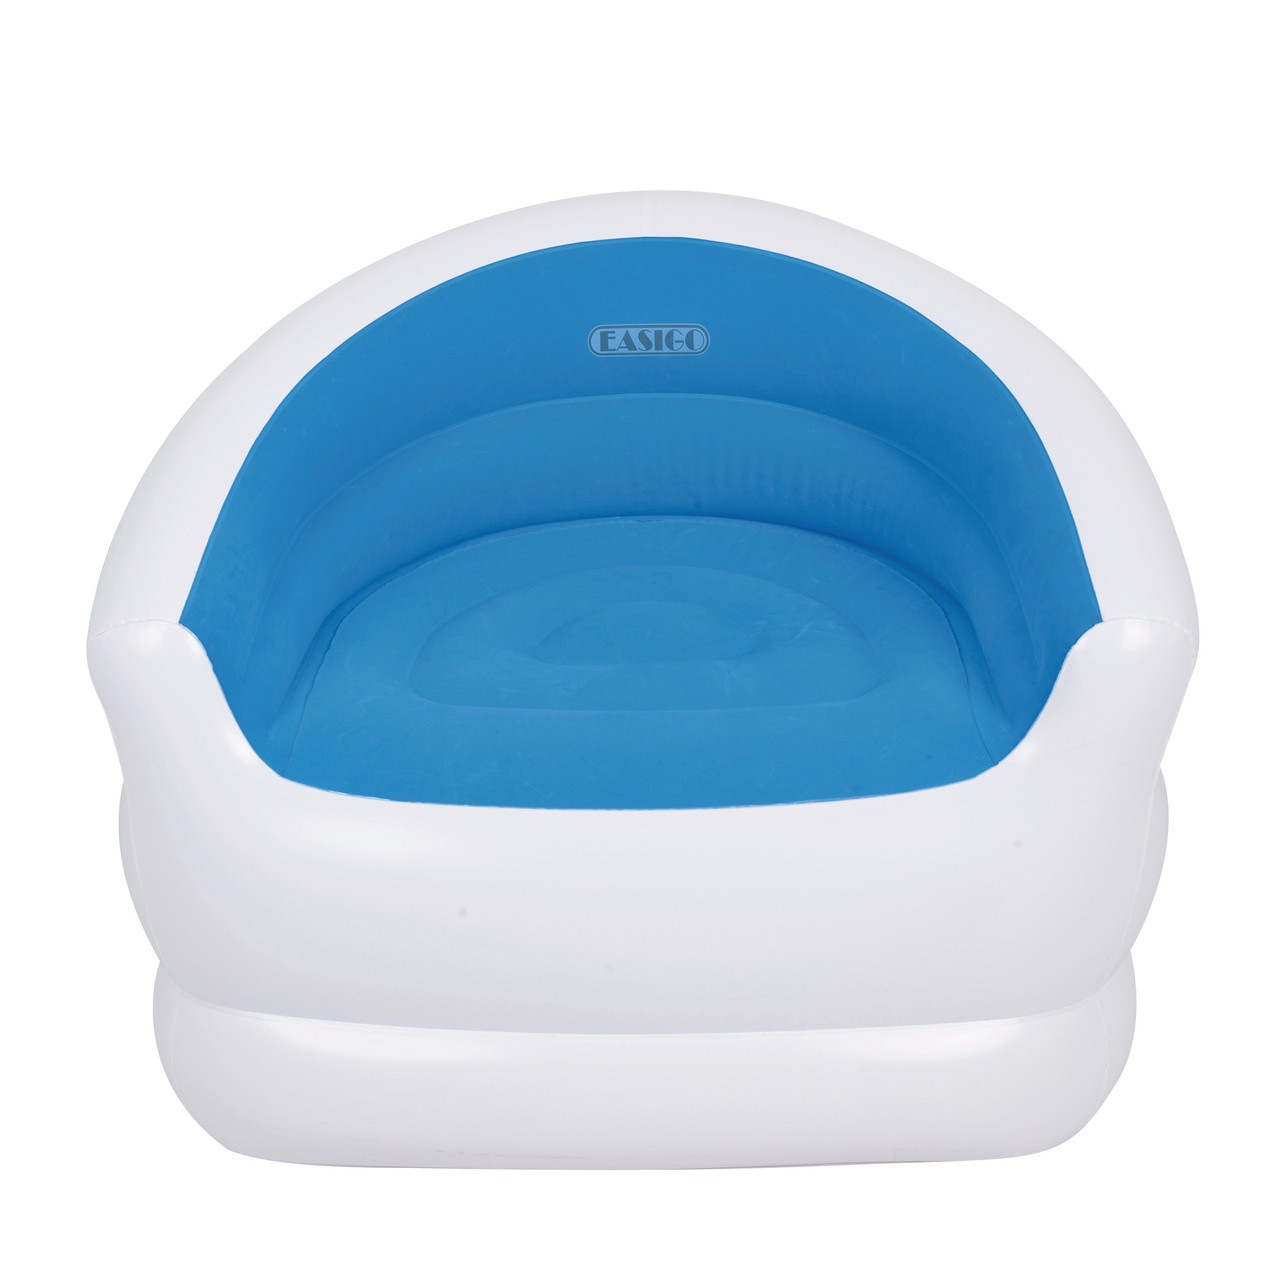 Super 37 White And Blue Color Splash Indoor Outdoor Inflatable Lounge Chair 32148652 Cjindustries Chair Design For Home Cjindustriesco